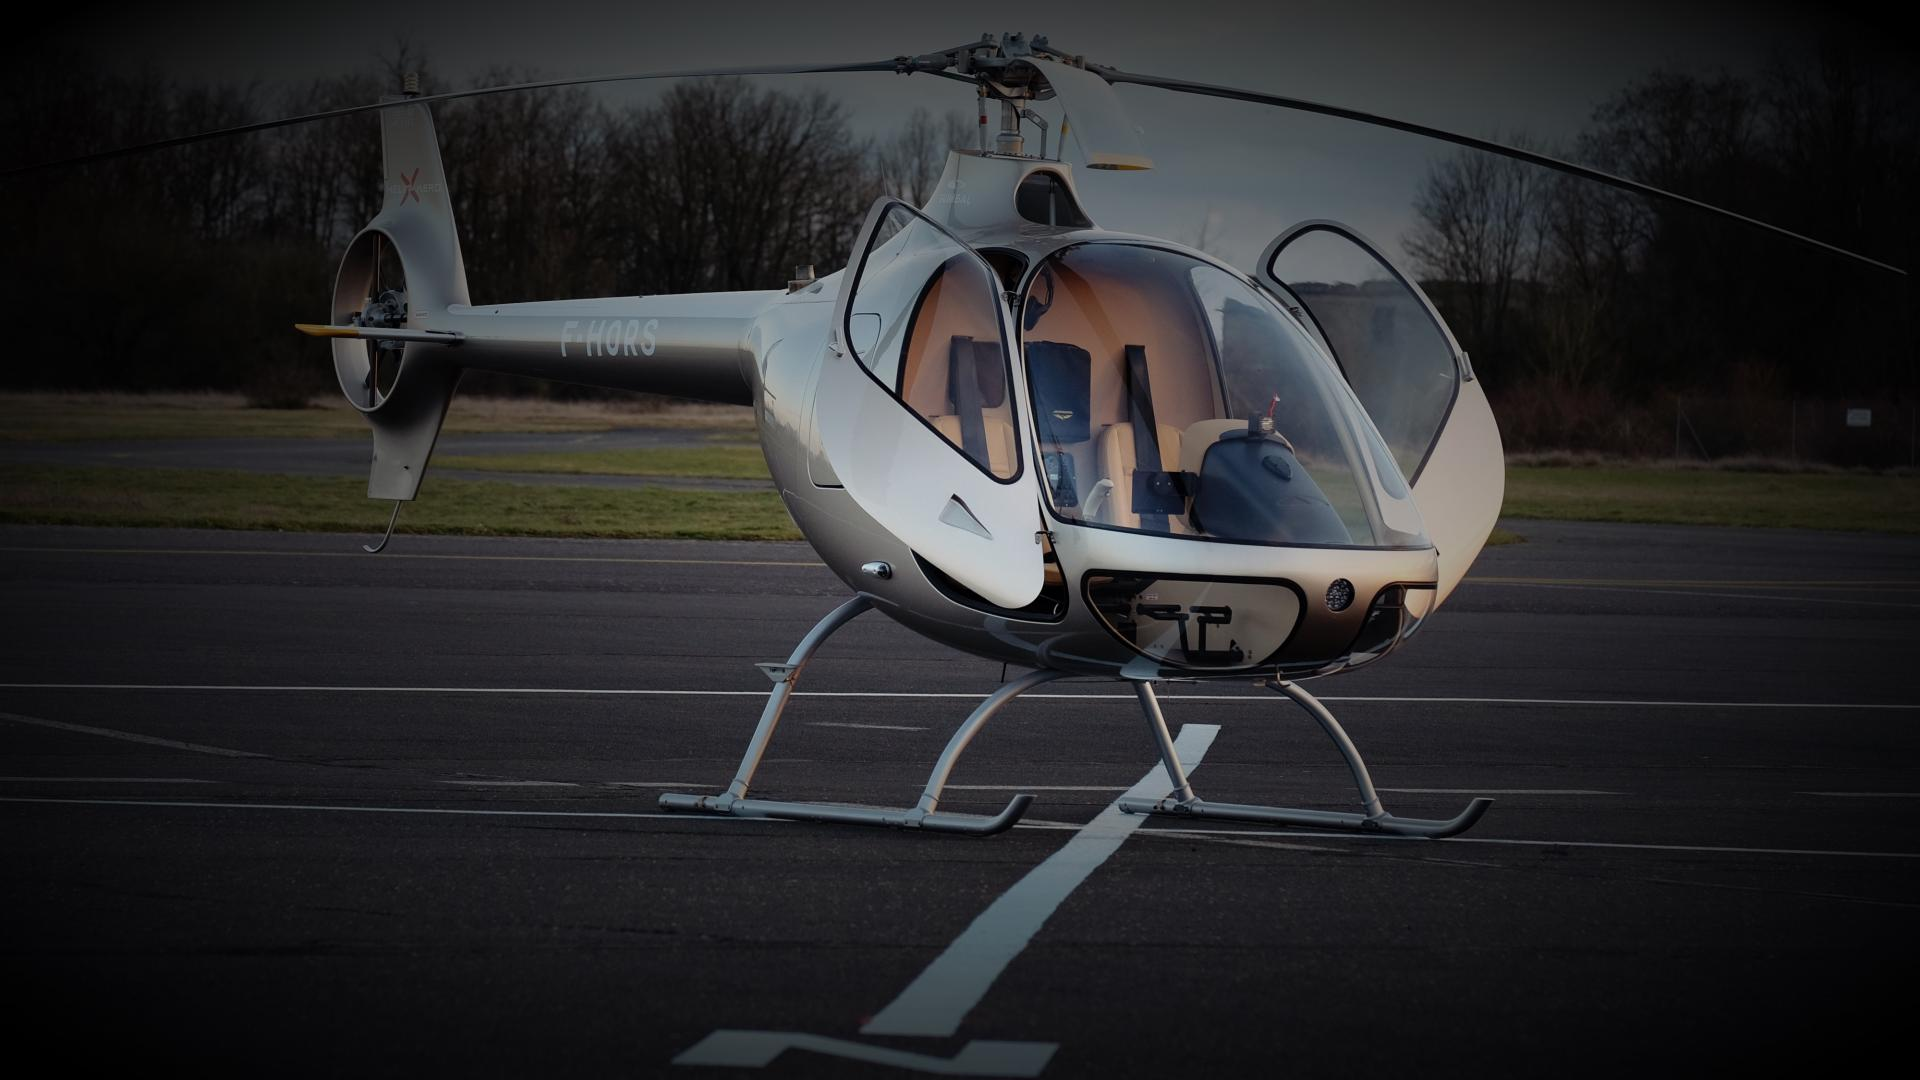 helicoptere-guimbal-cabri-g2-anti-foudre